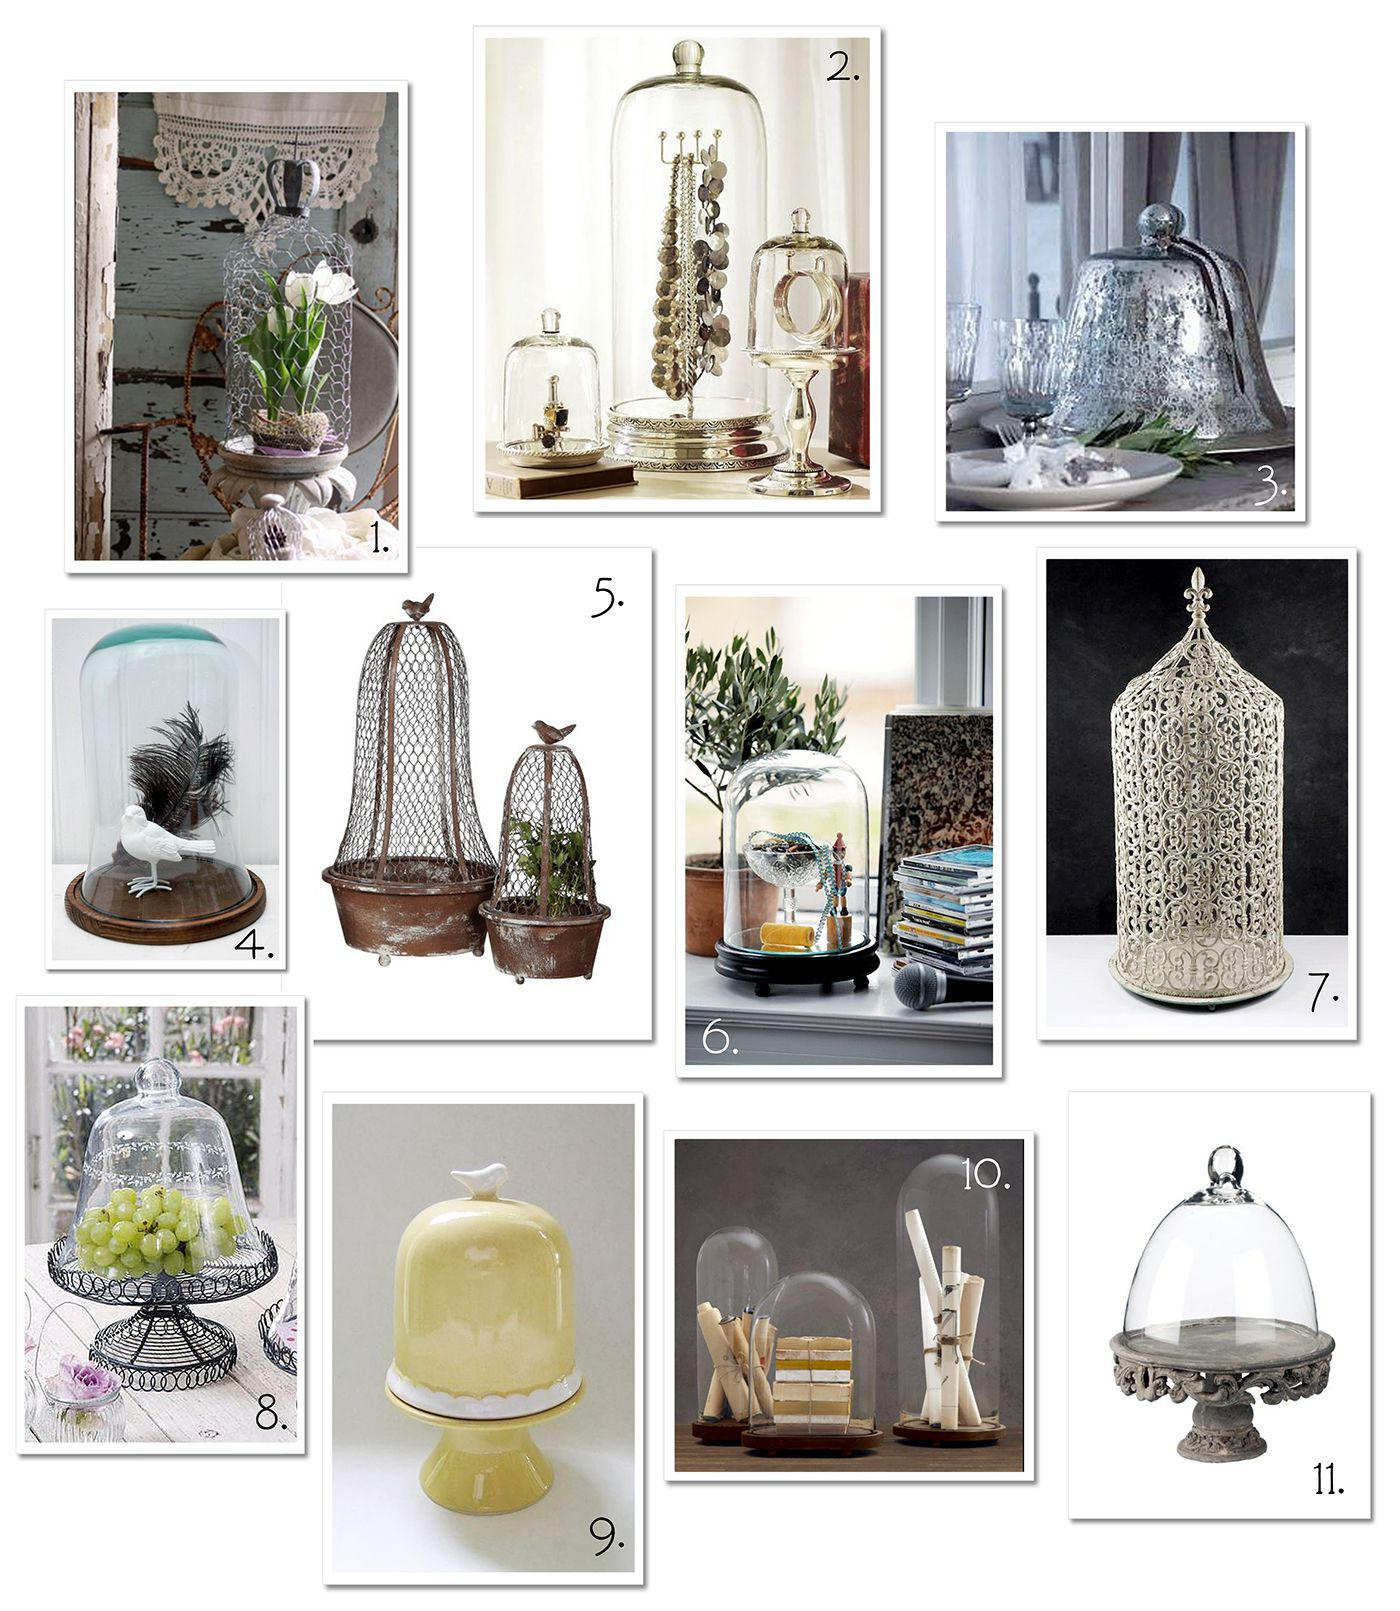 Bell Jar Decorating Ideas Cloches  They're So Timeless In Their Elegance  For The Home